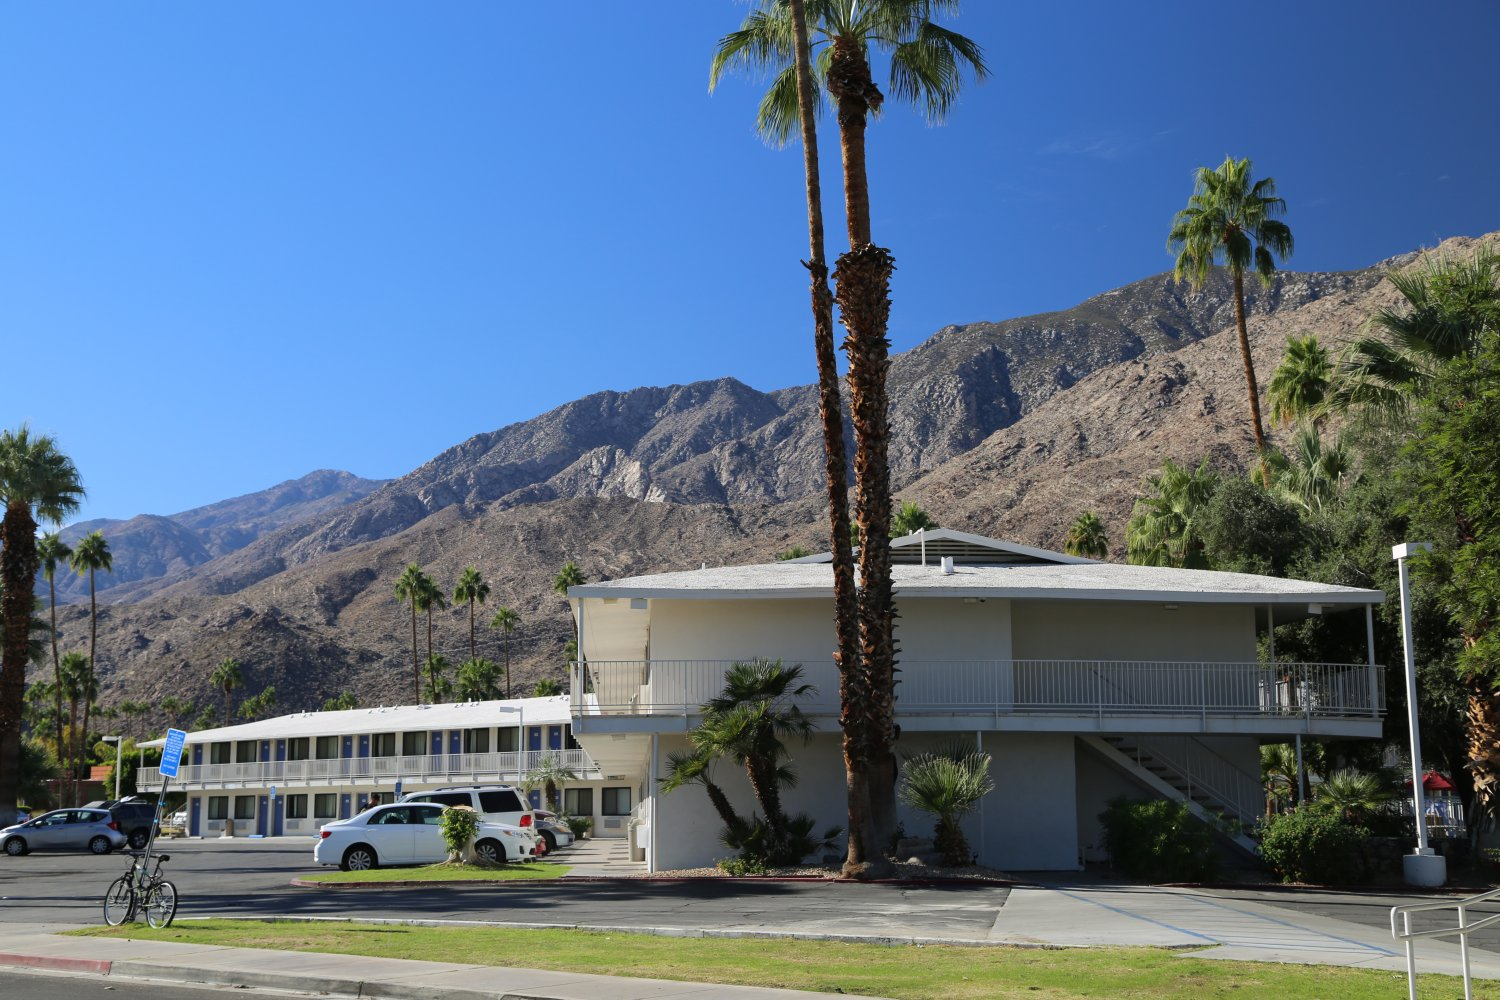 Guides - Palm Springs, CA - Hotels, Lodging - Dave's Travel